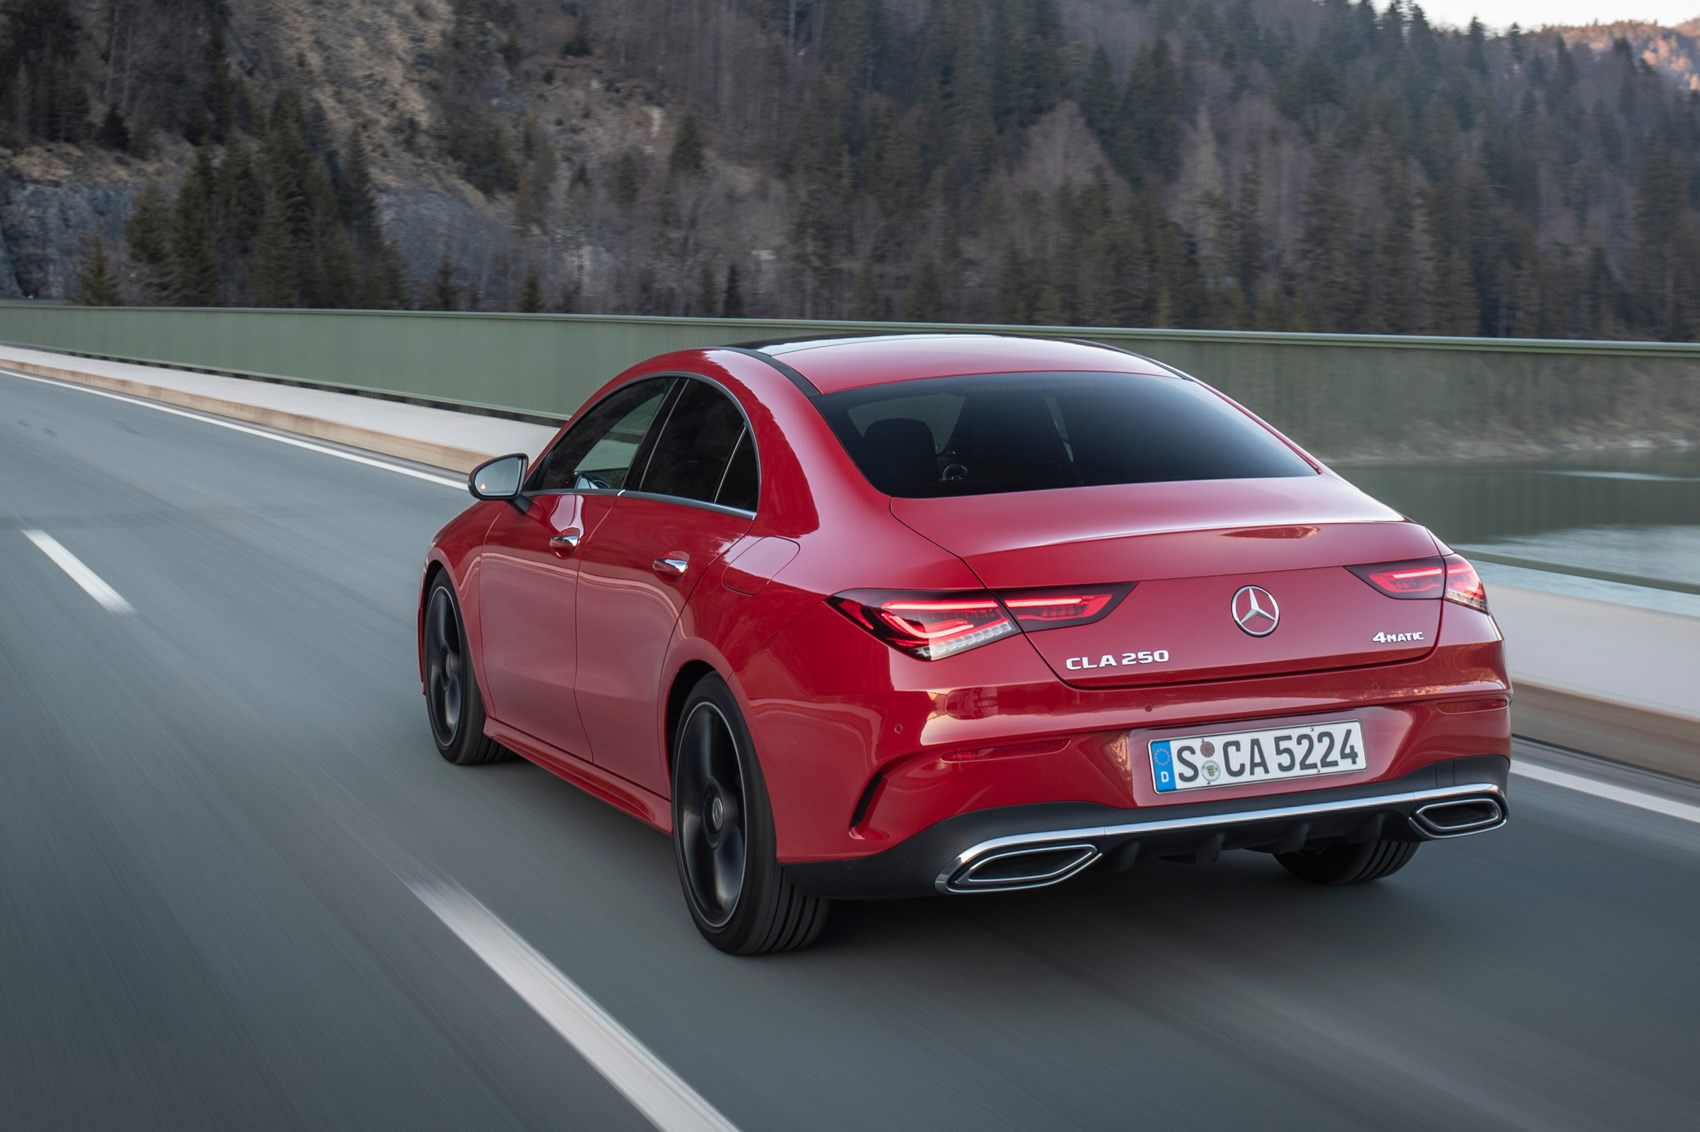 Bmw Lease Deals >> Mercedes CLA (2019) review: first drive of four-door coupe ...